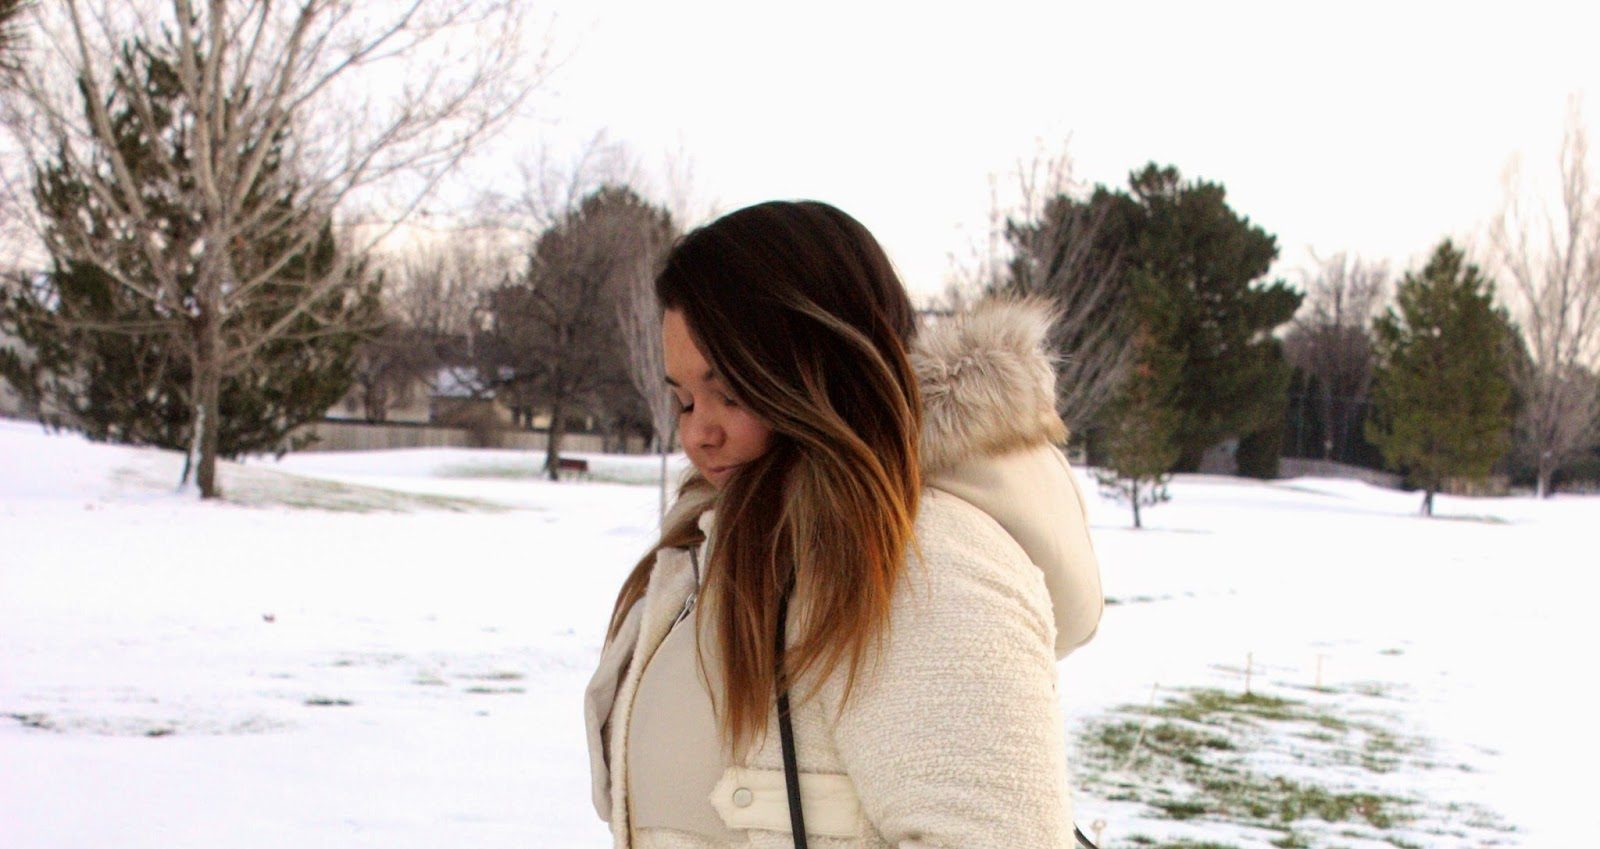 Natalie Craig, natalie in the city, chicago, boise, idaho, plus size fashion blogger, winter fashion, thick girls, curvy women, btw, body positivity, winter coats, faux fur, winter white coat, skirt, forever 21, ralph lauren purse, plus size, full figured, celebrate my size, fat acceptance, fashion,